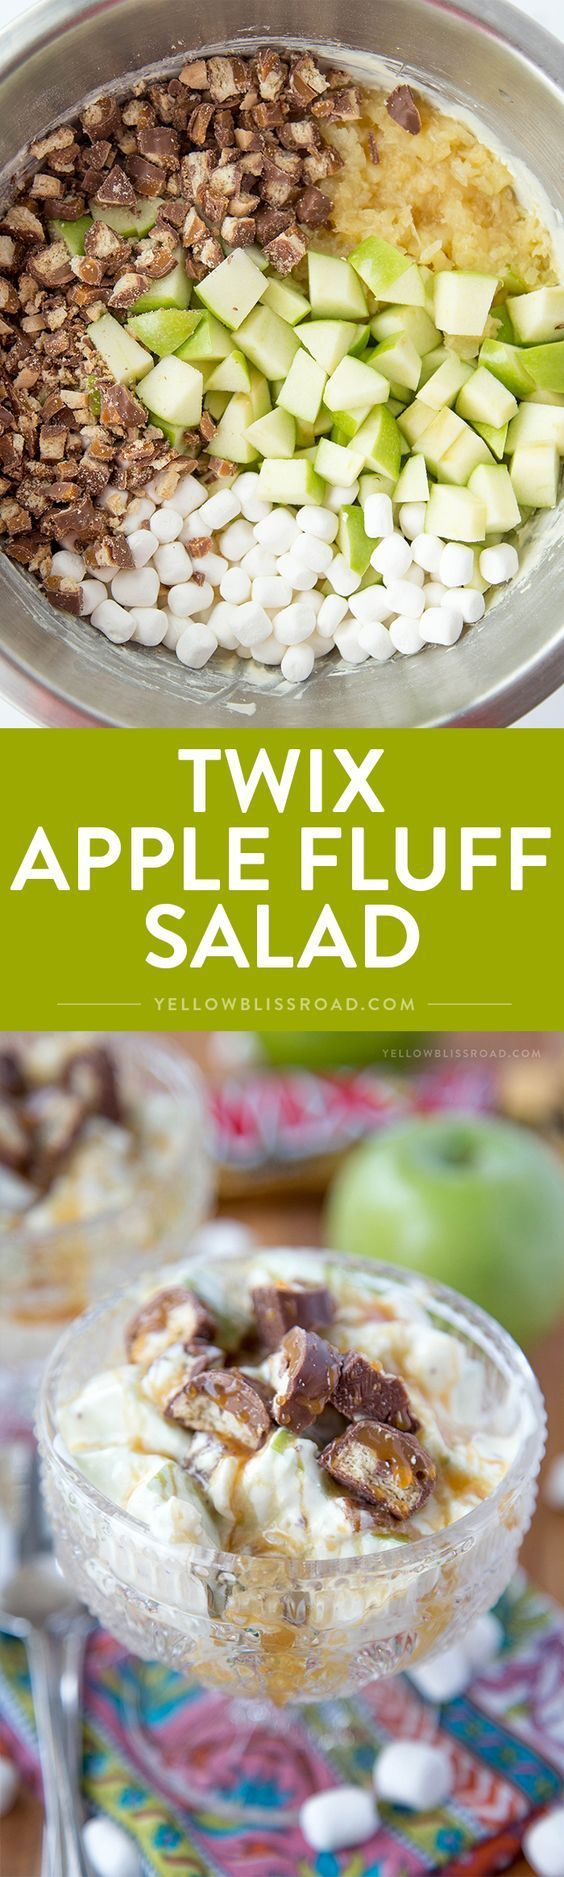 Twix Apple Fluff Salad - with pineapple, caramel, marshmallows in a yummy vanilla Cool Whip dressing! Perfect dessert salad for picnics or potlucks!